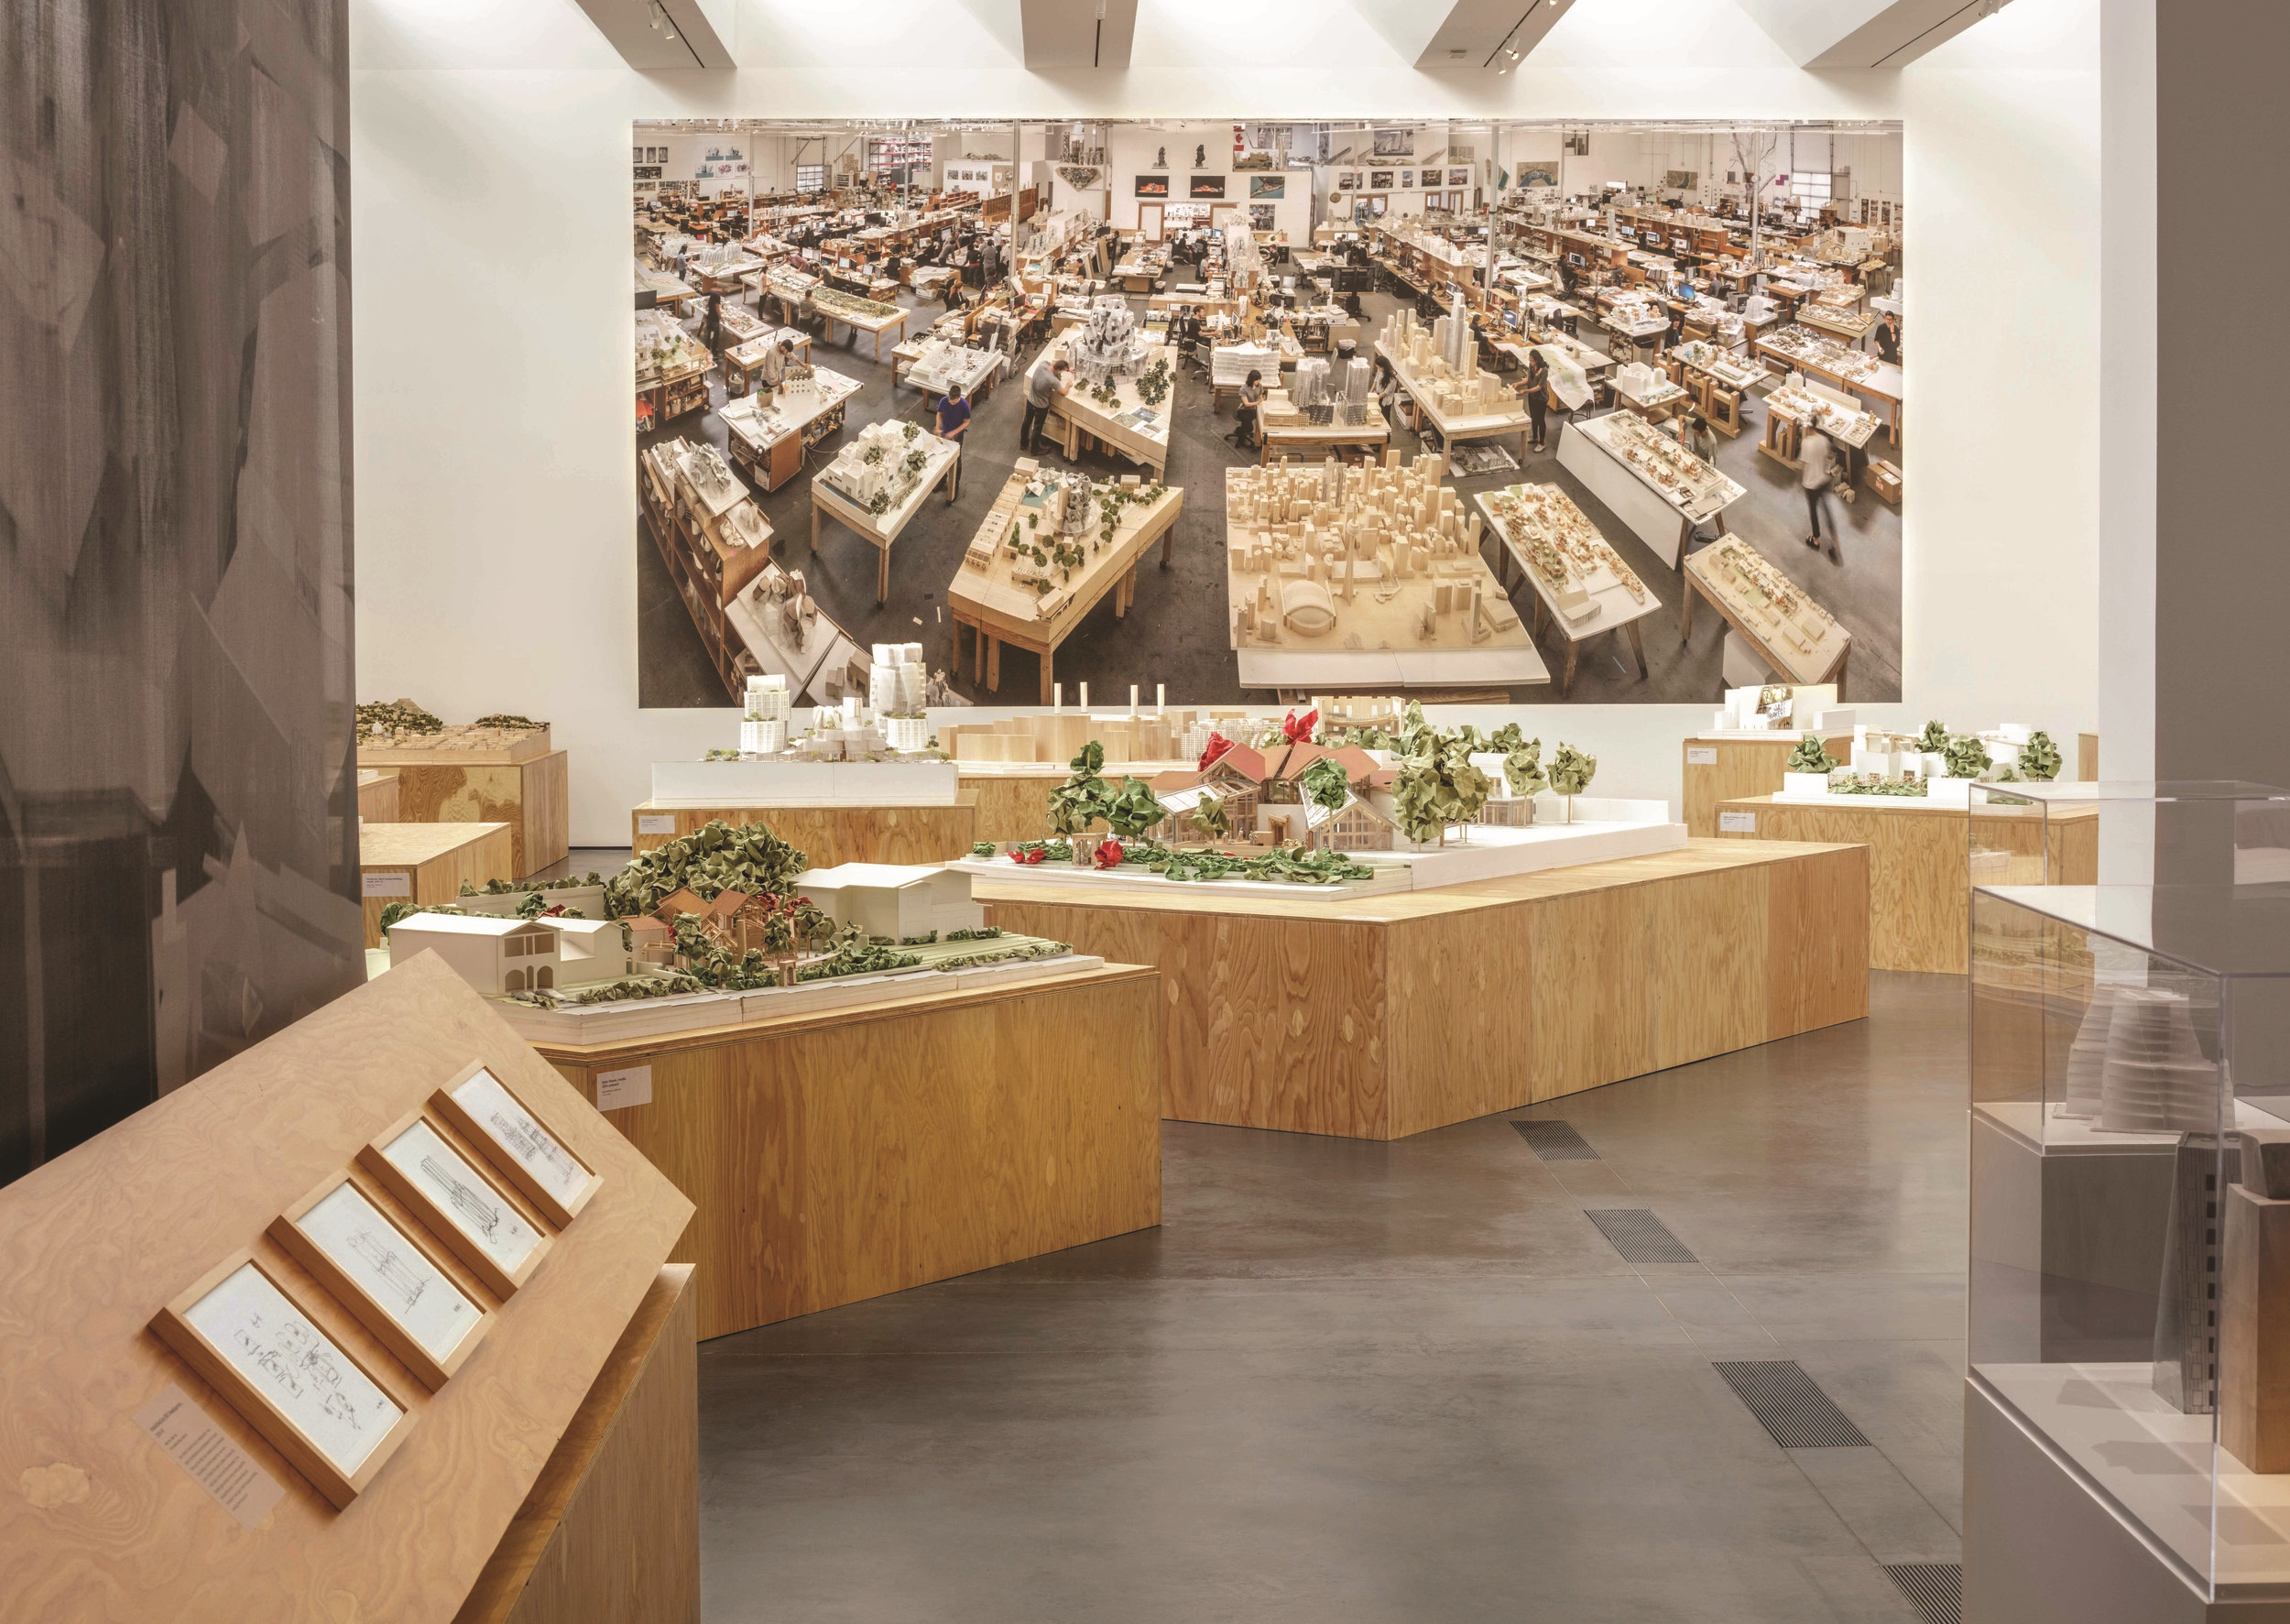 20150903_LACMA_Gehry-Install_014_labeled.jpg